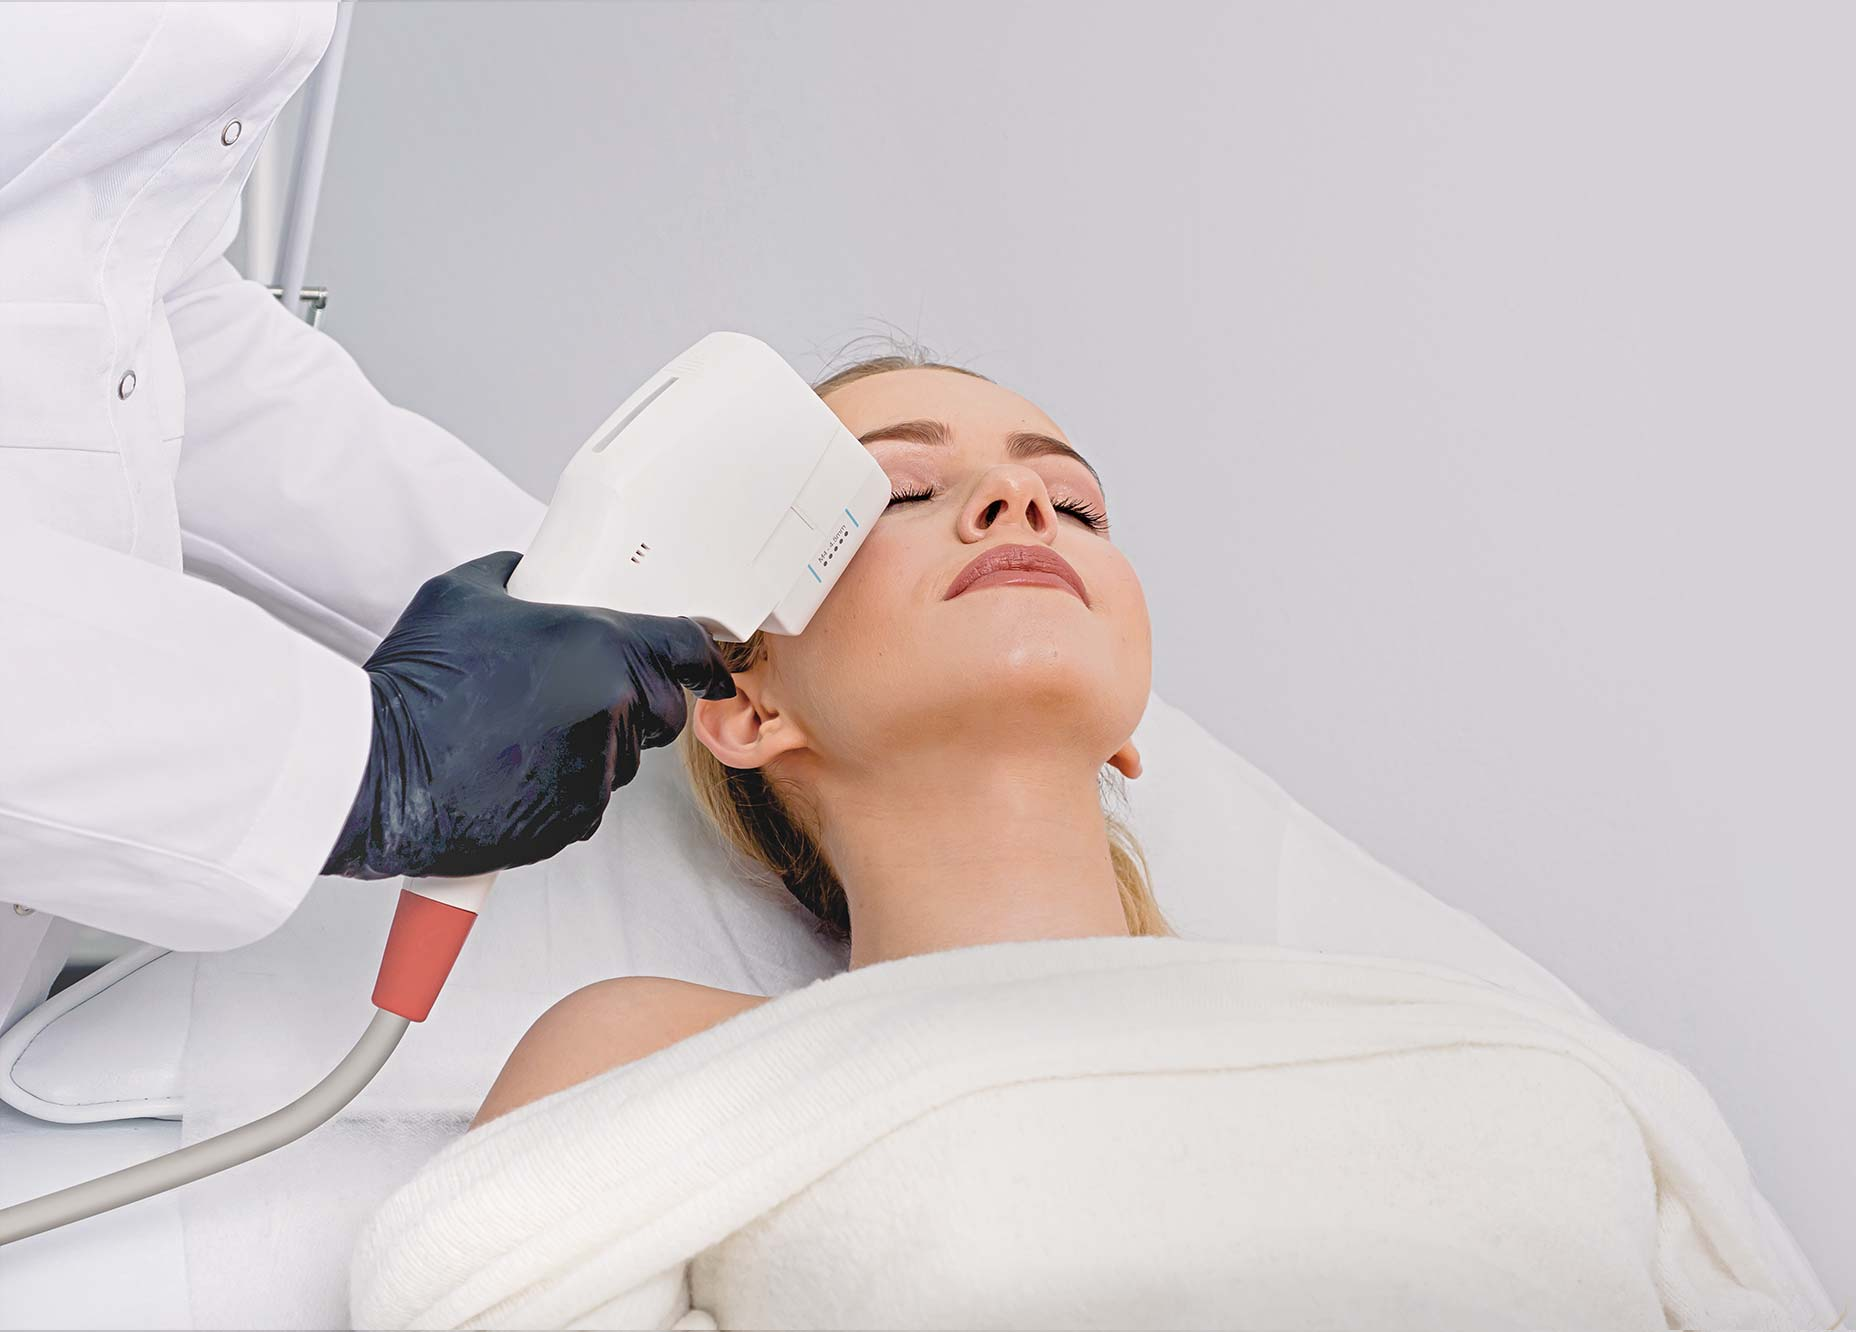 Attractive woman receiving skin treatment